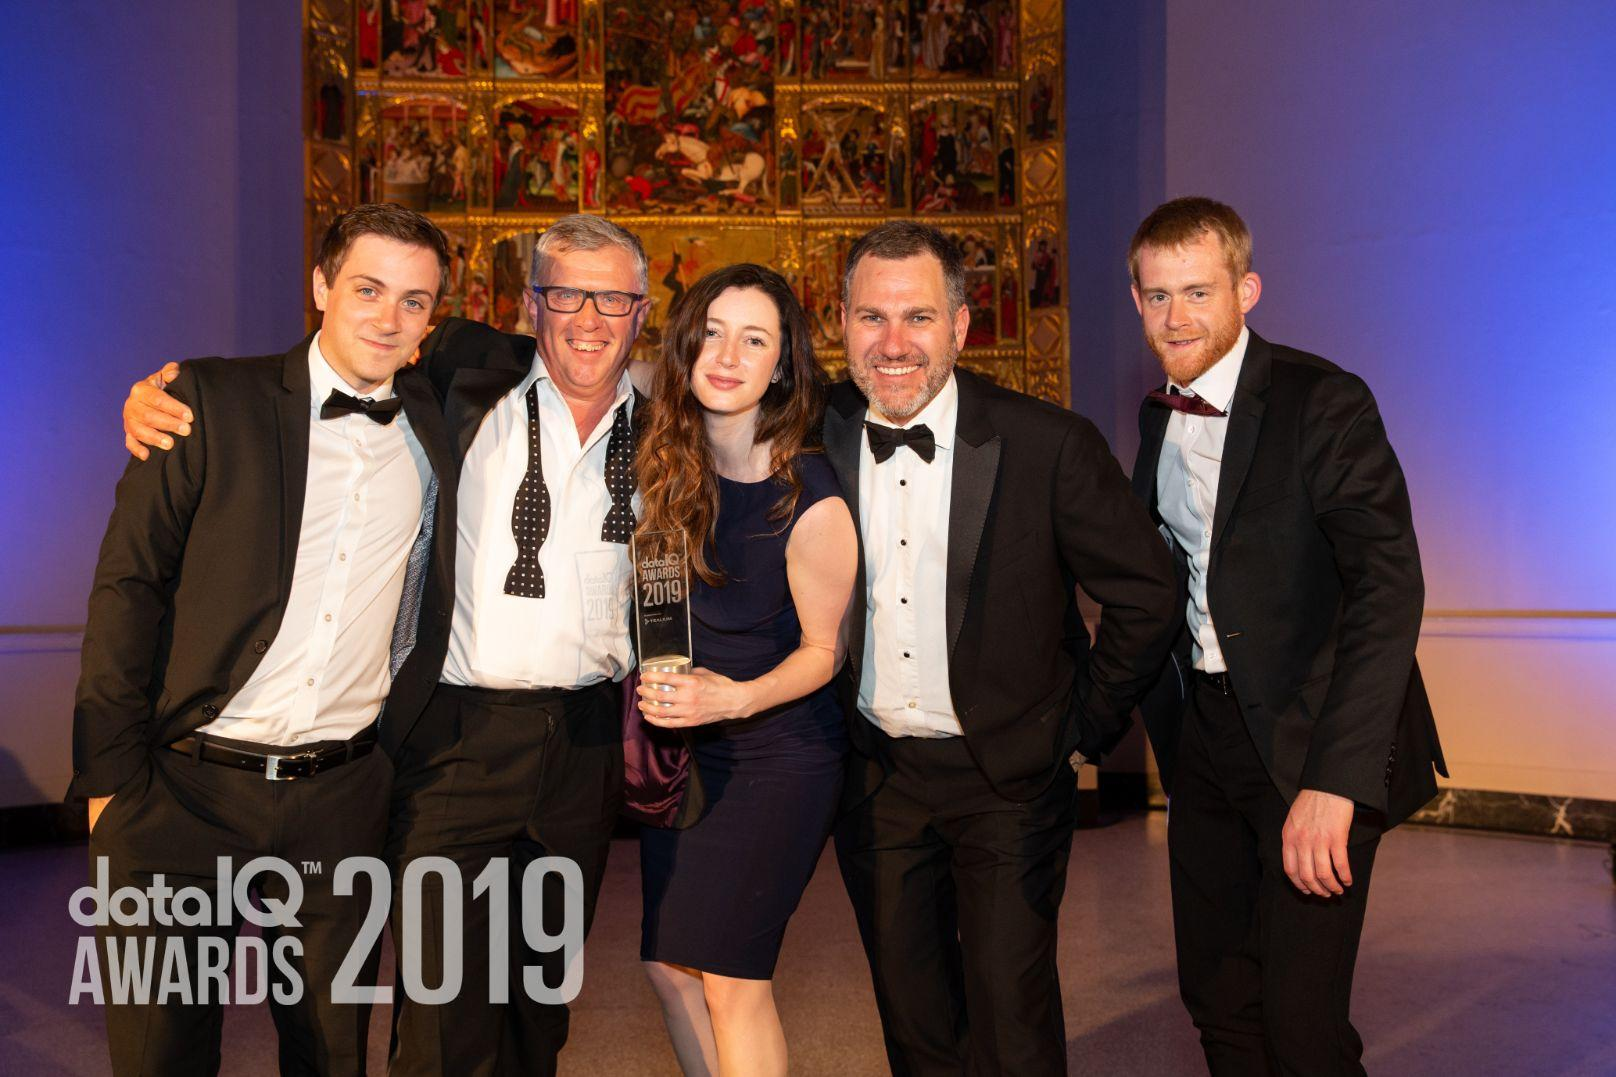 Awards 2019 Image 133